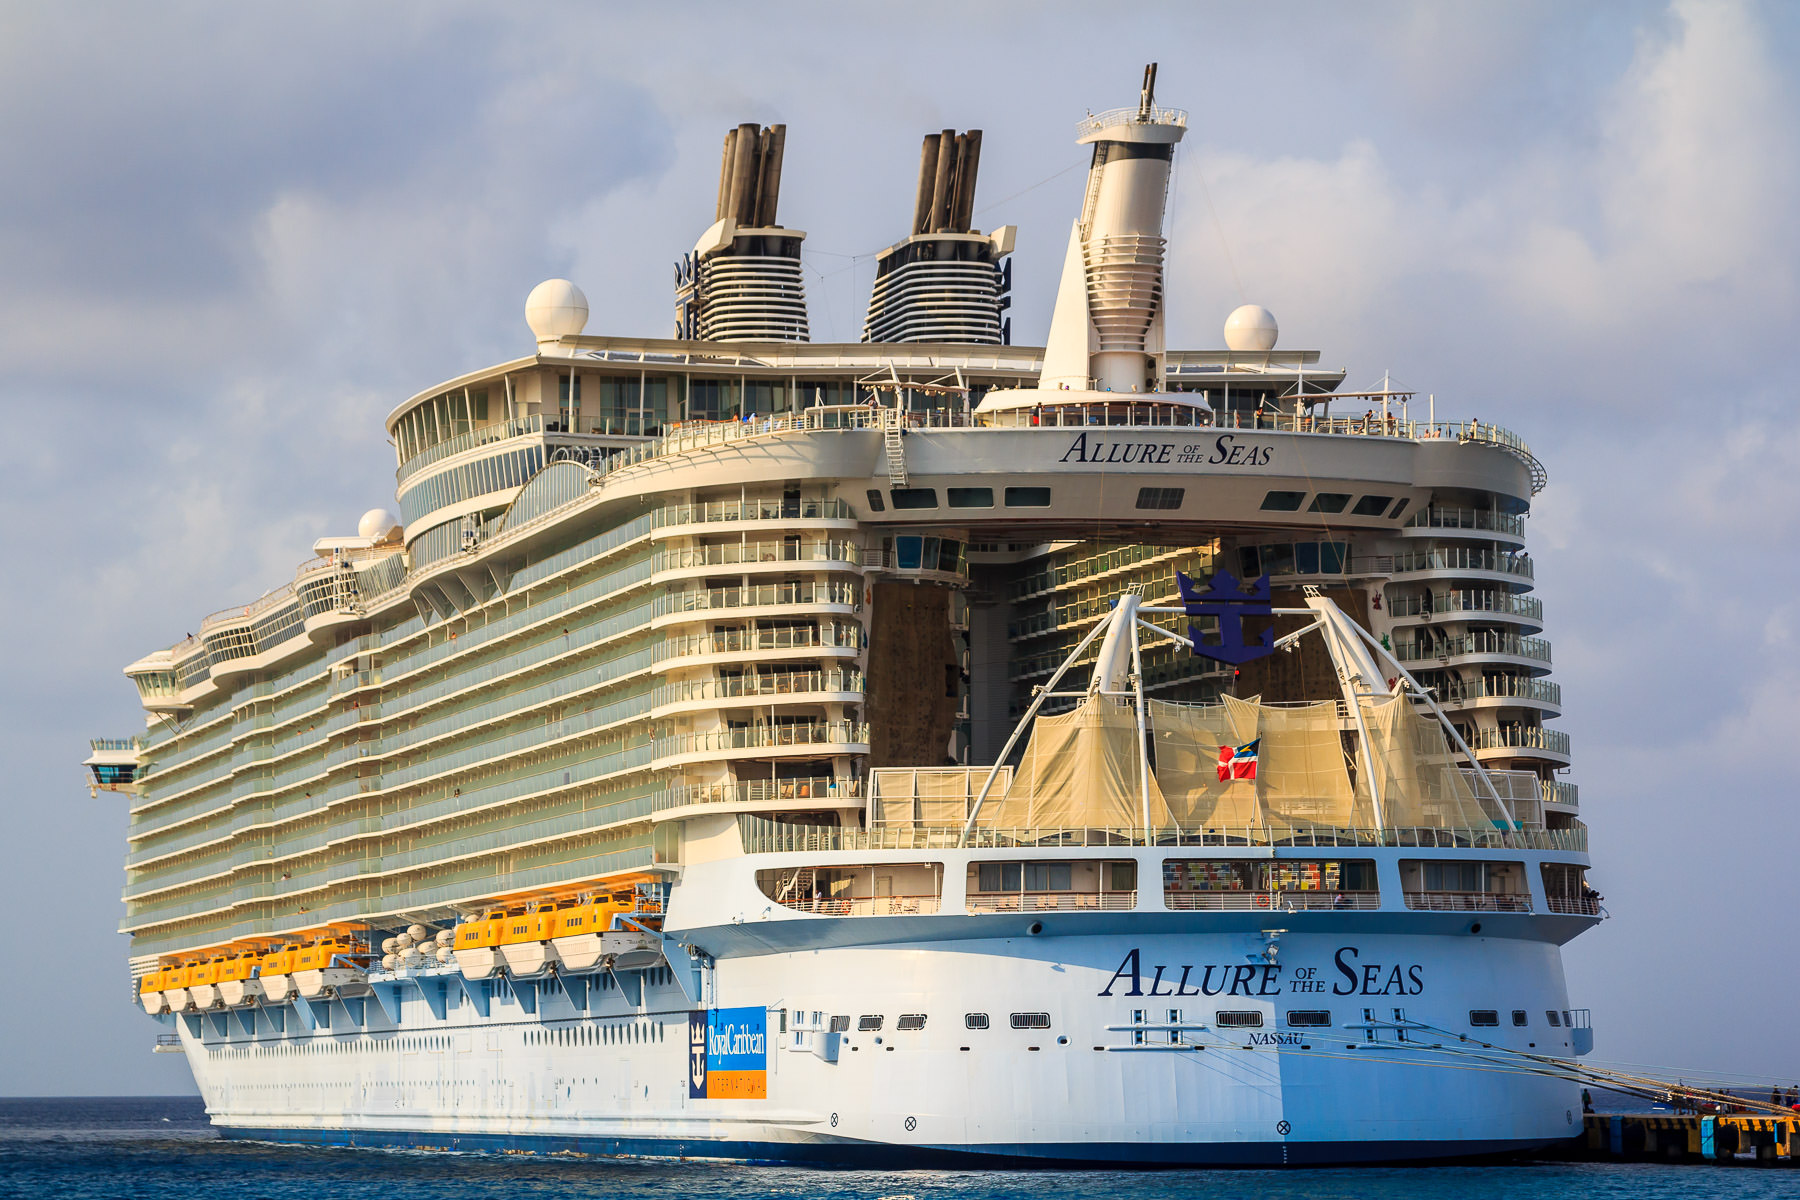 Royal Caribbean's Allure of the Seas—the largest passenger ship ever built—docked at Cozumel, Mexico.